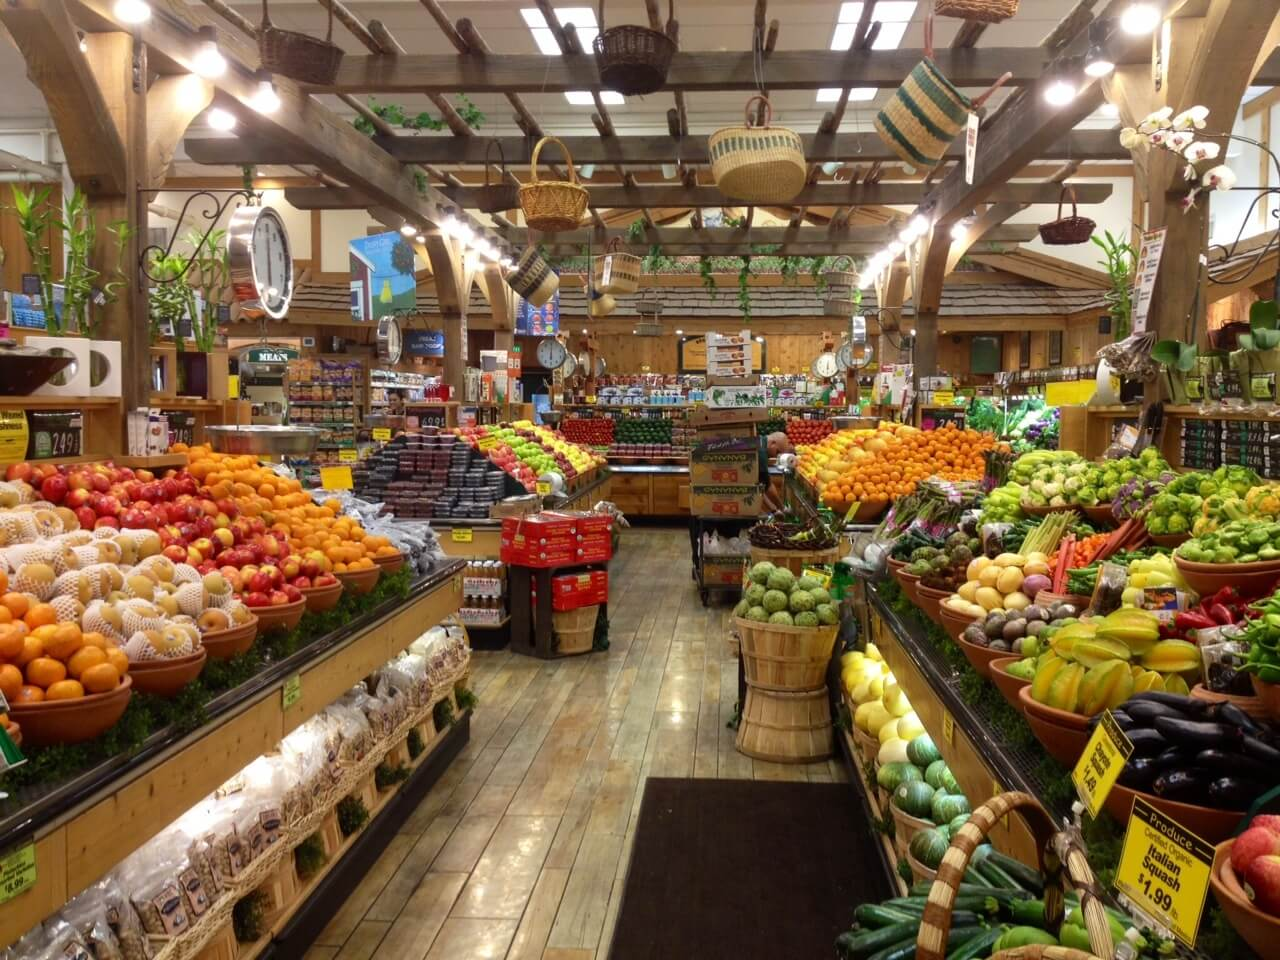 Most Unhealthy Foods in Healthy Food Stores